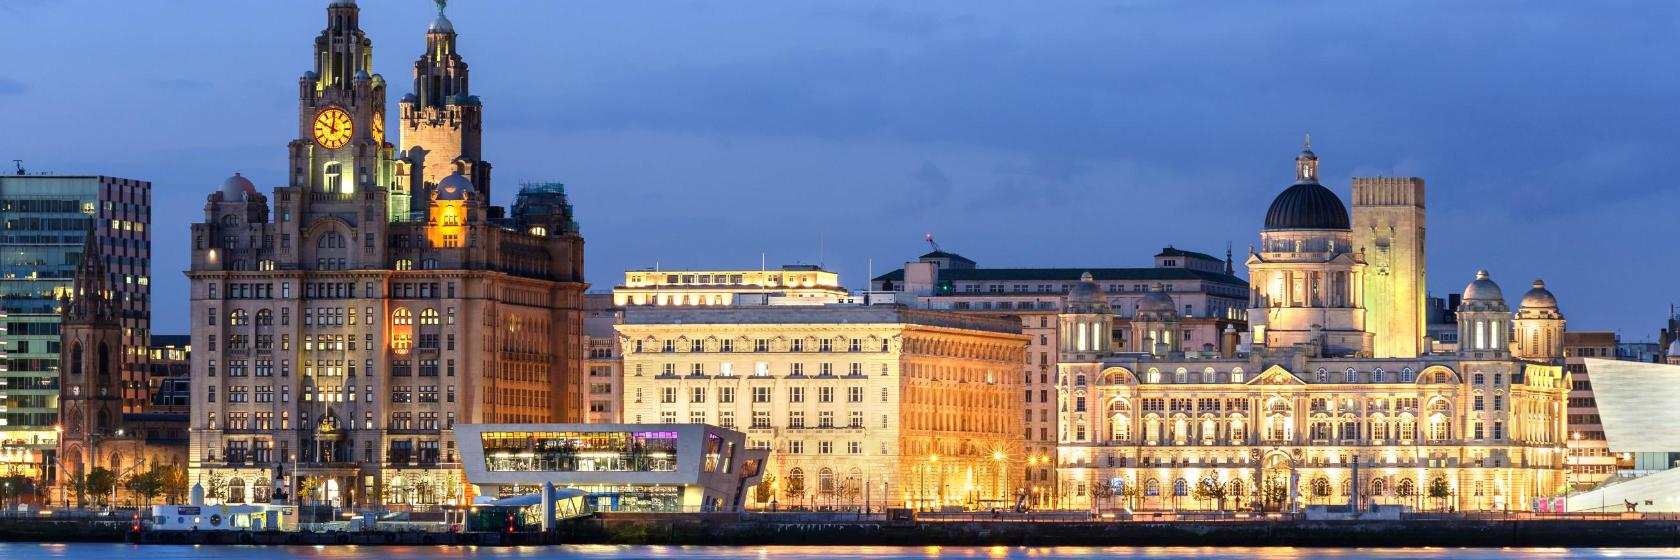 Liverpool Hotels, England